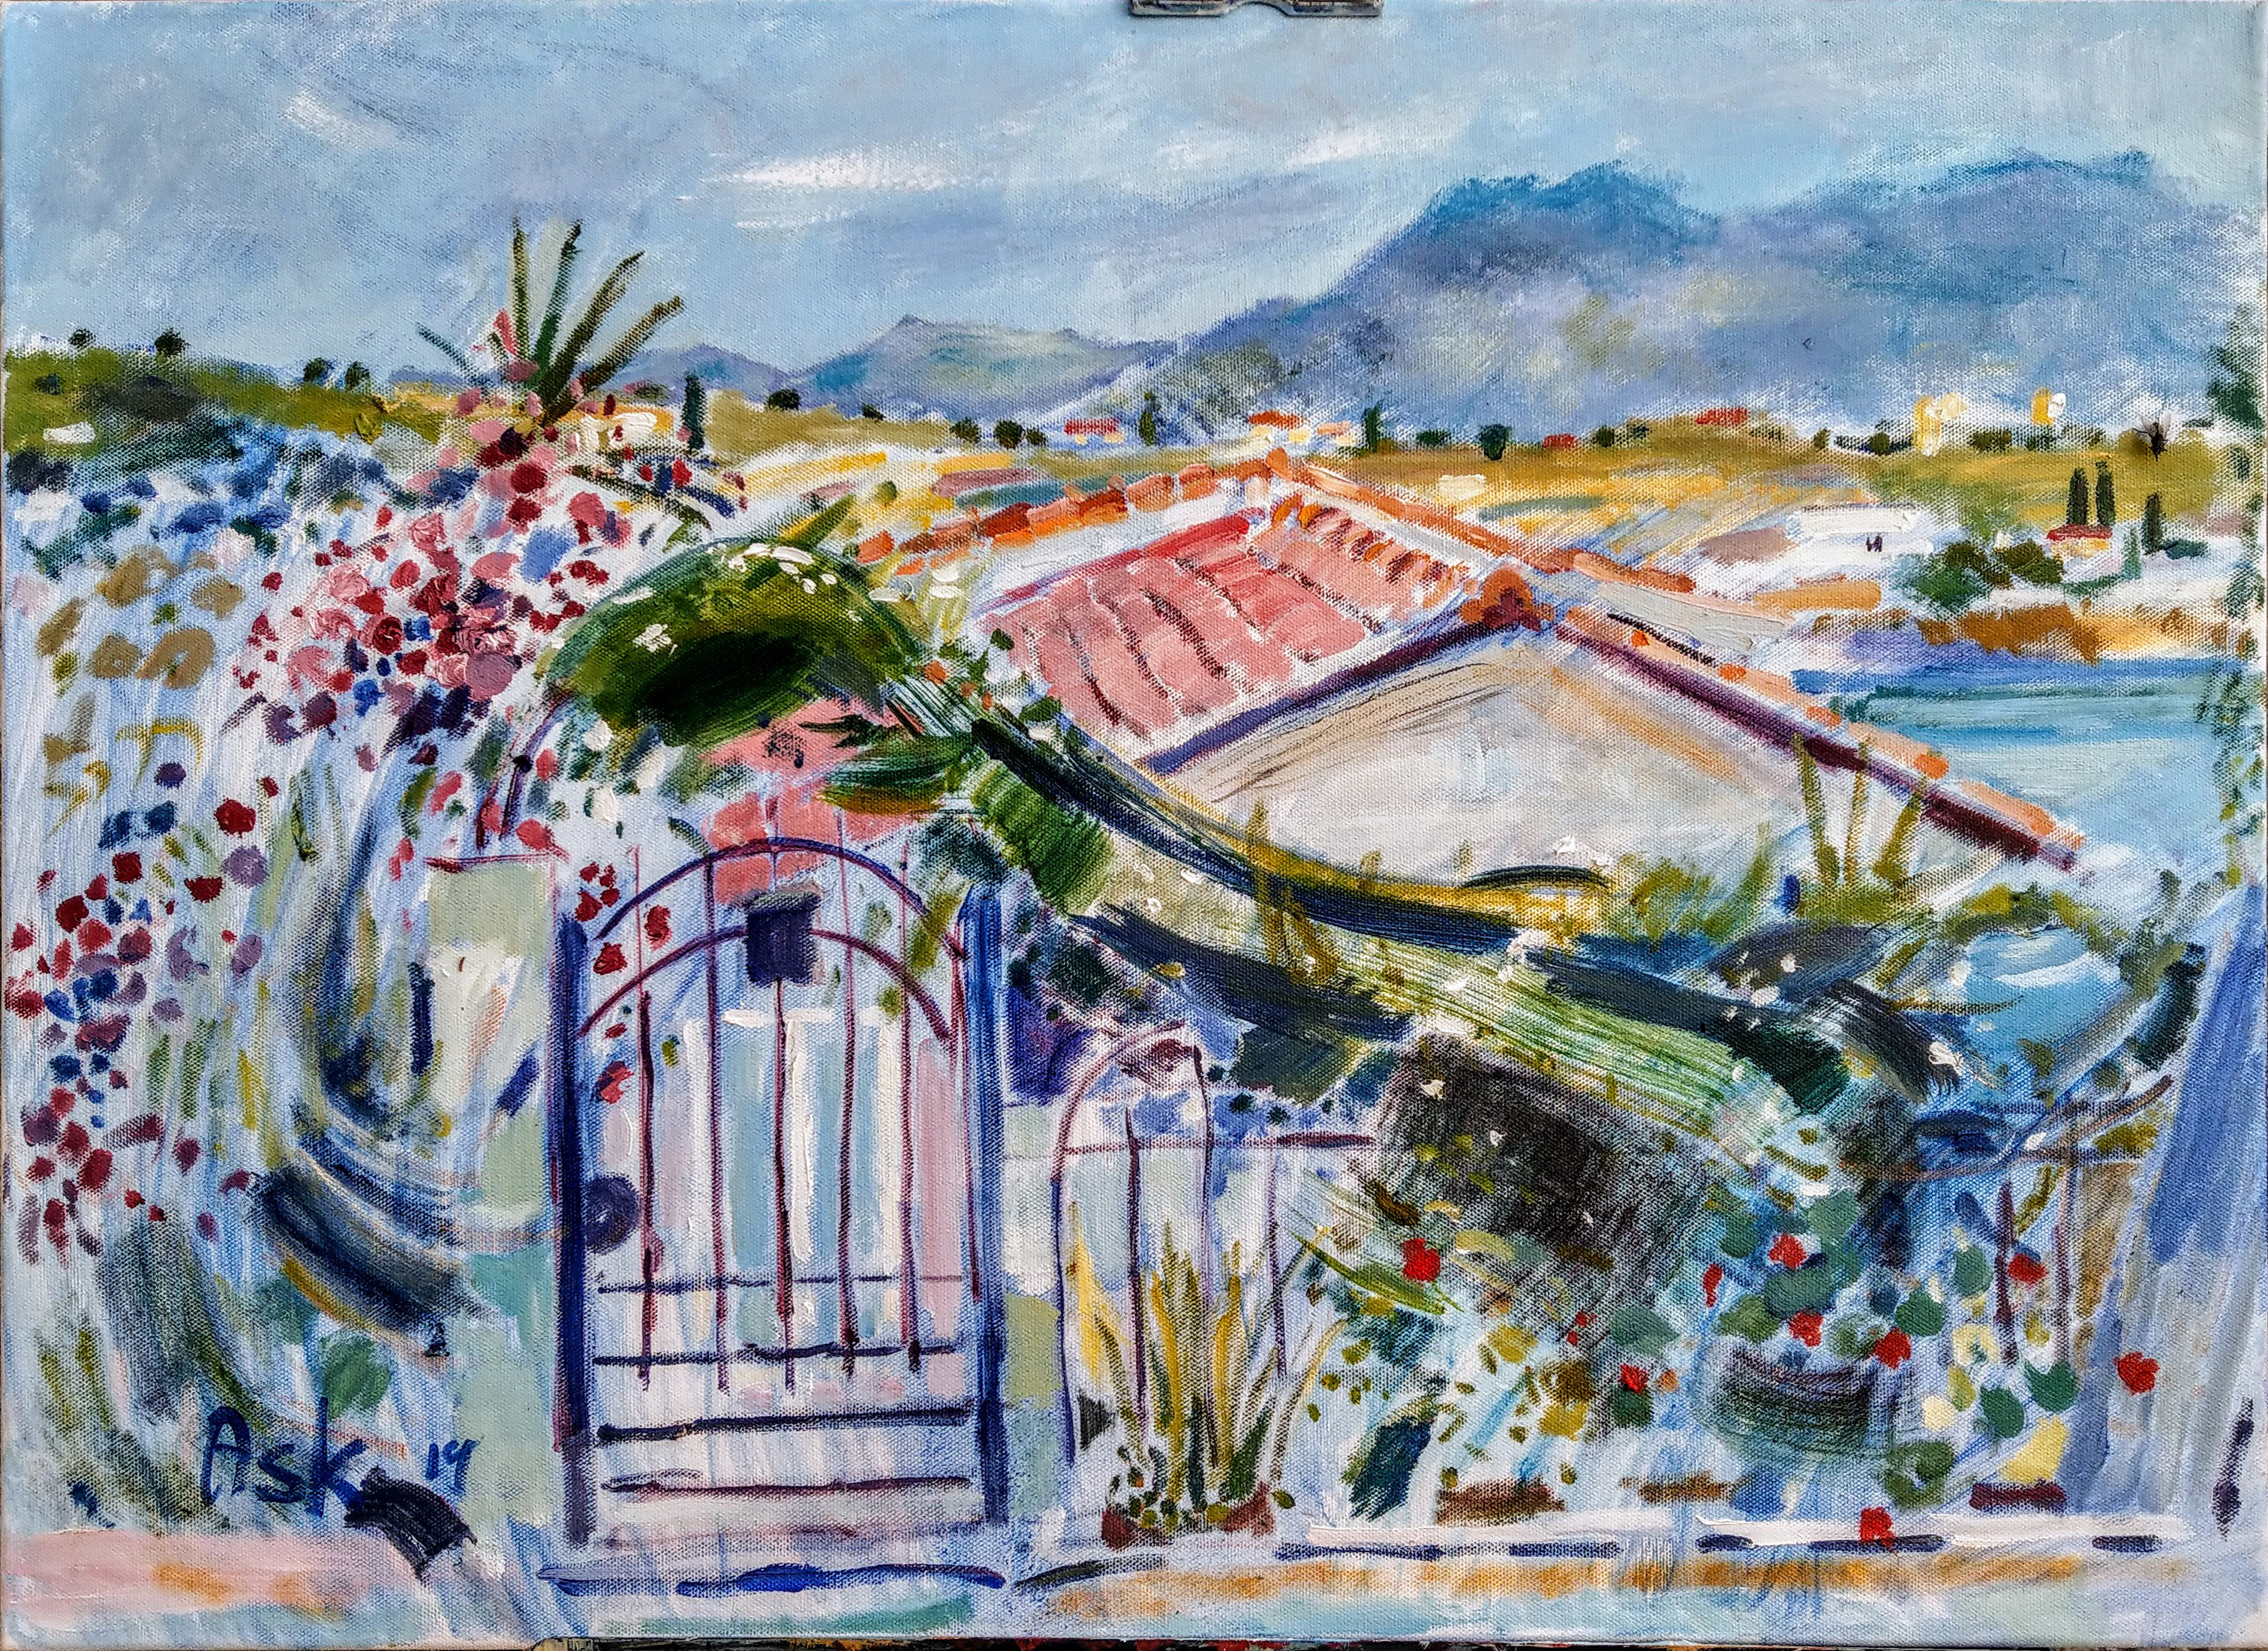 "Oil Painting on canvass by Ask of a little house with sweeping curves of foliage over a curved metal gate,  dotted with geraniums and bougainvillea 700 x 500 mm May 2019 ""Μονοκατοικία με Λουλούδια""  Αίγινα"